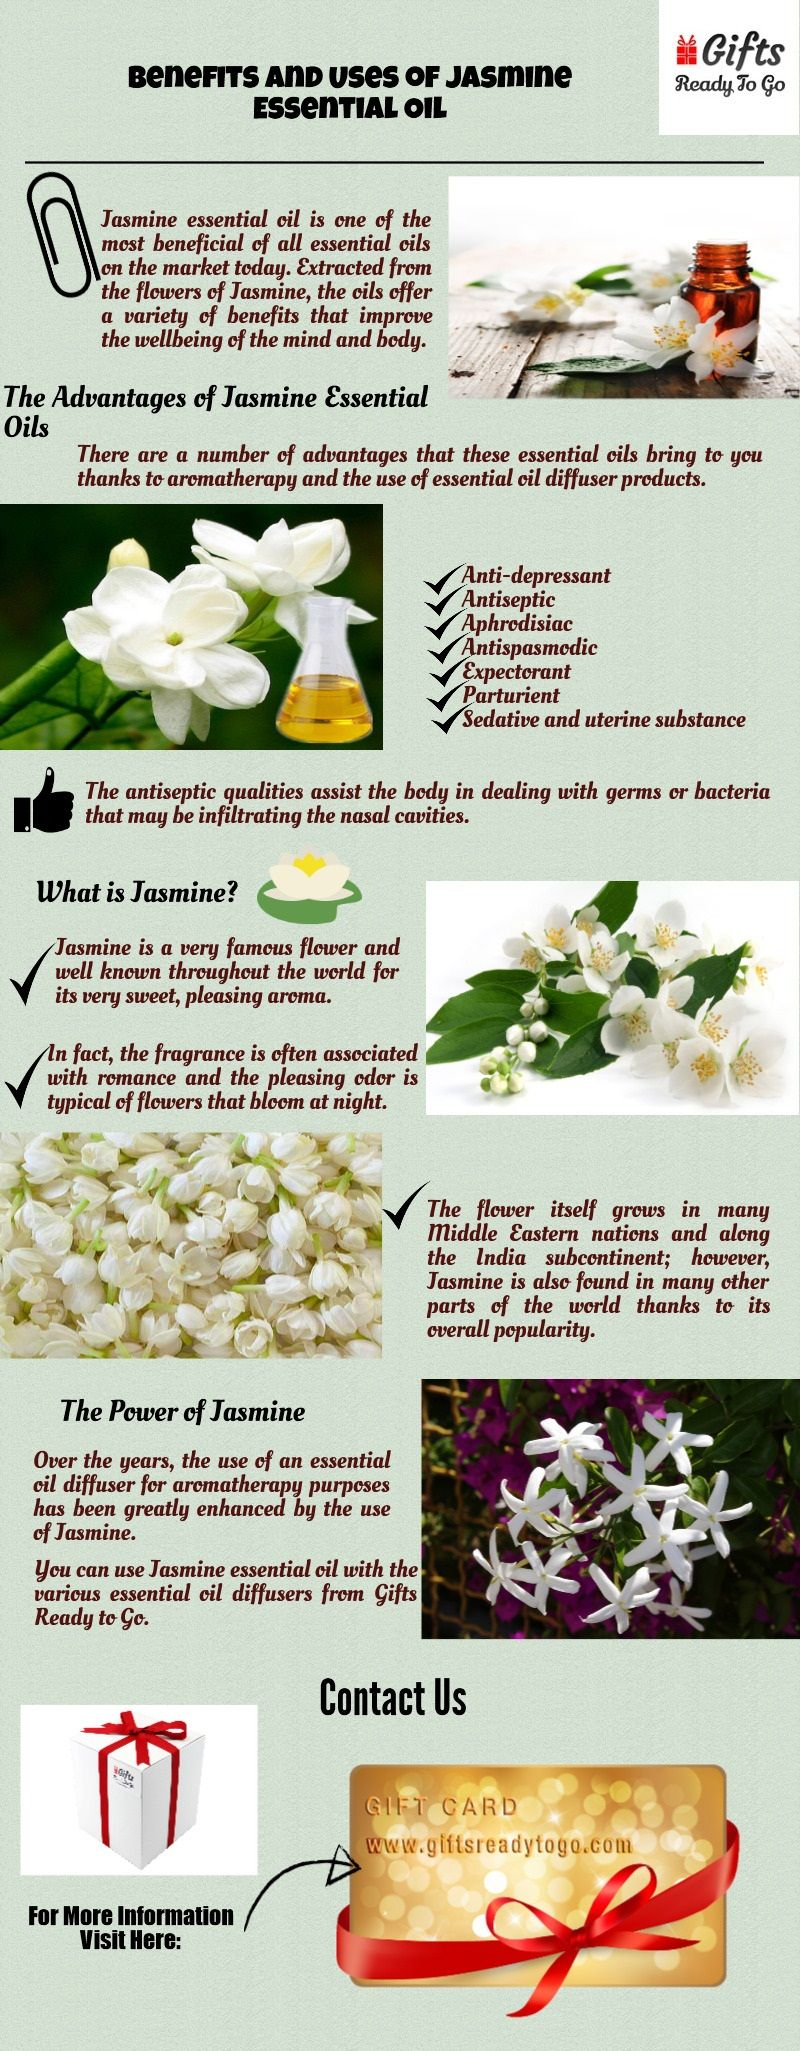 What are the benefits and uses of Jasmine essential oil ...